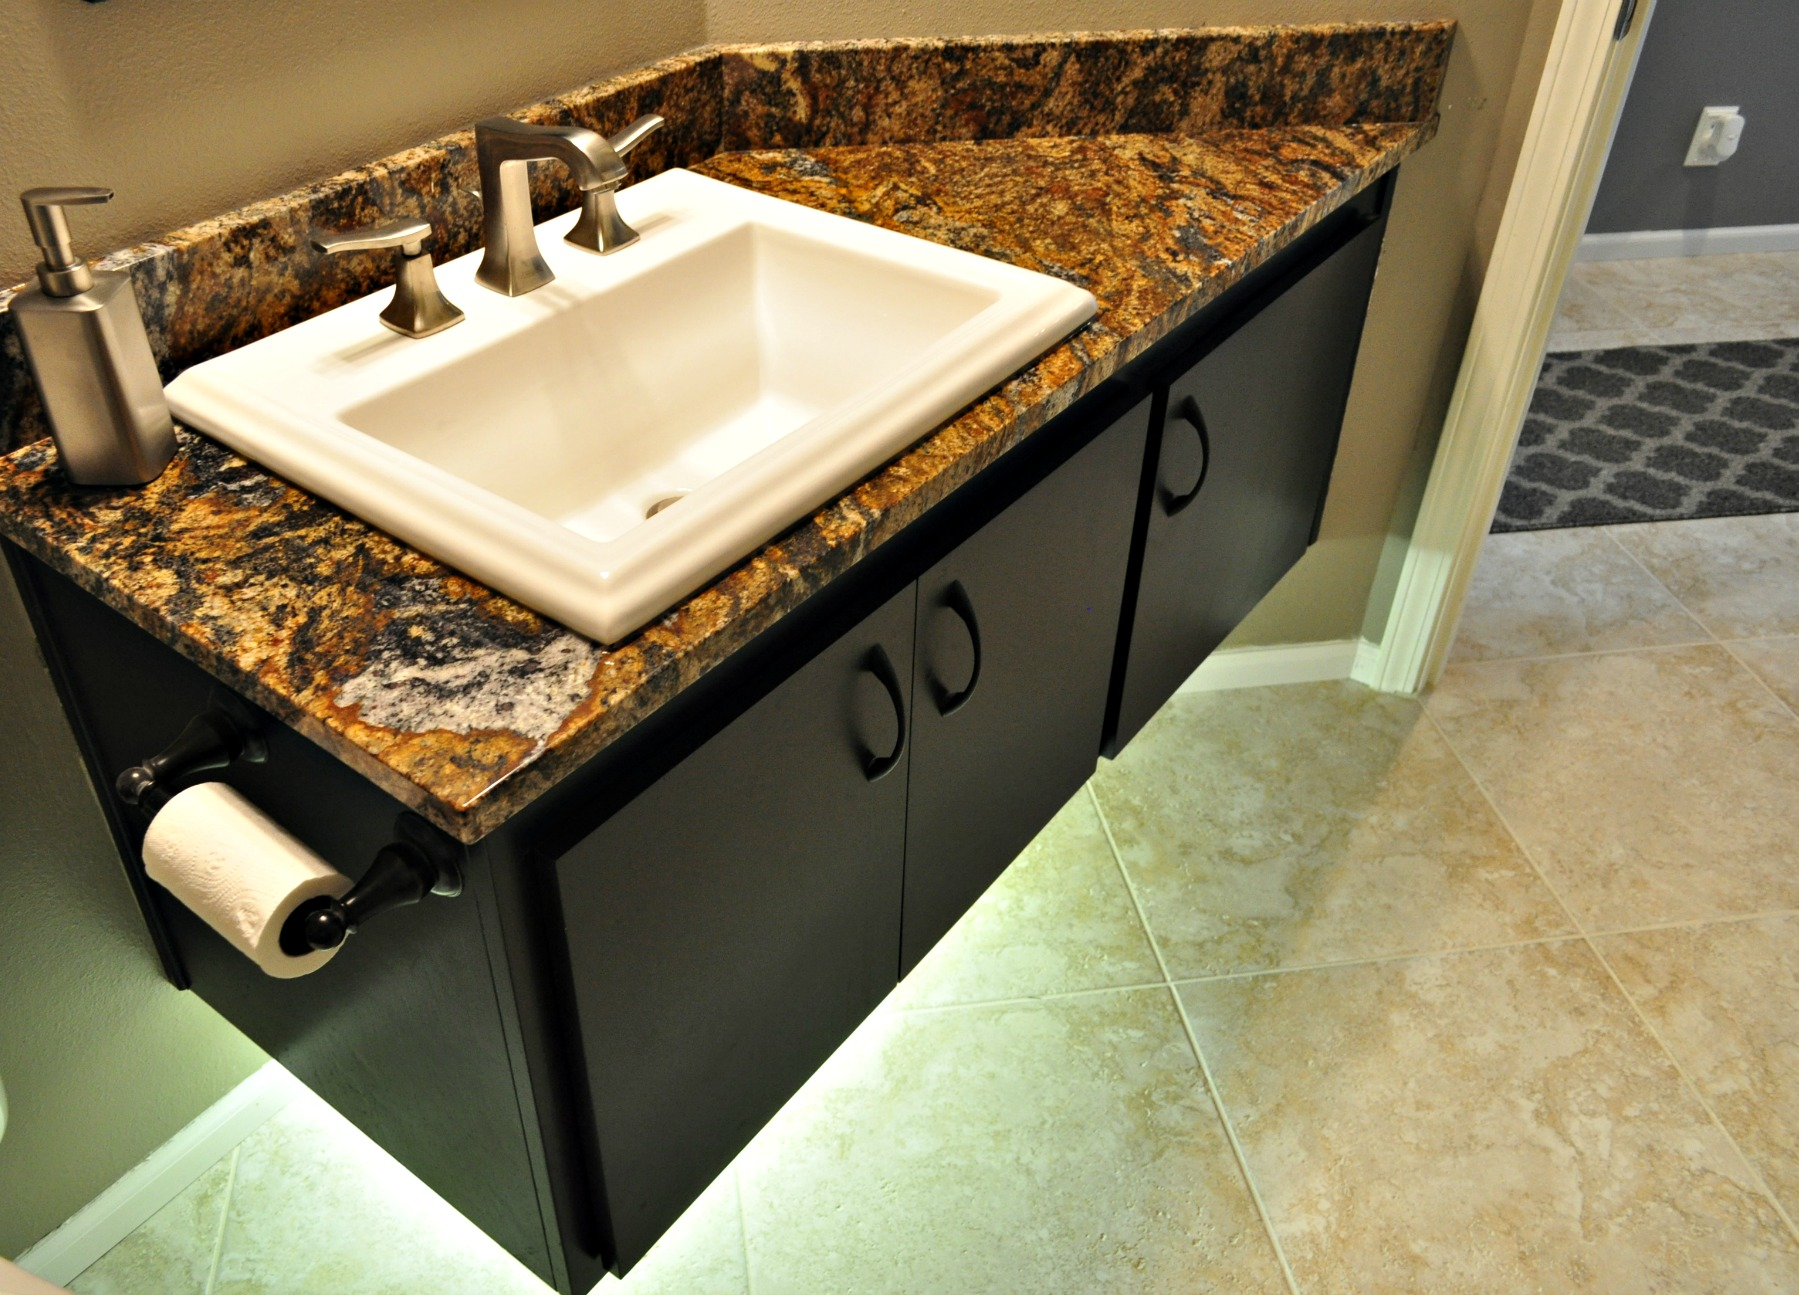 Just finished remodeling this half bath. What a stunning piece of granite!